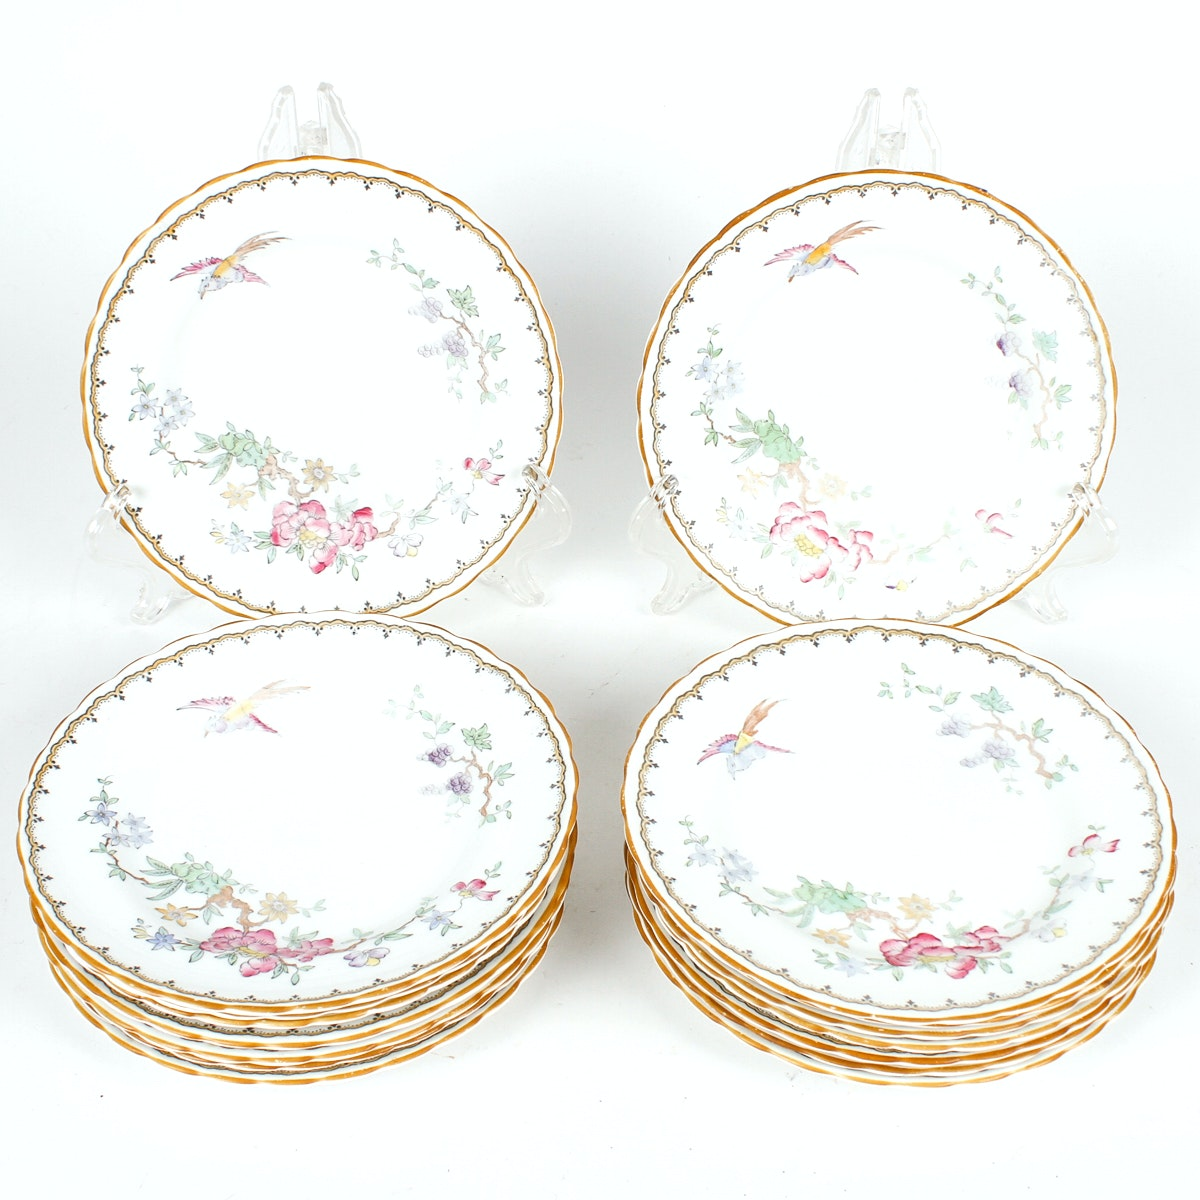 Tuscan Fine English Bone China Salad Plates with Birds and Flowers